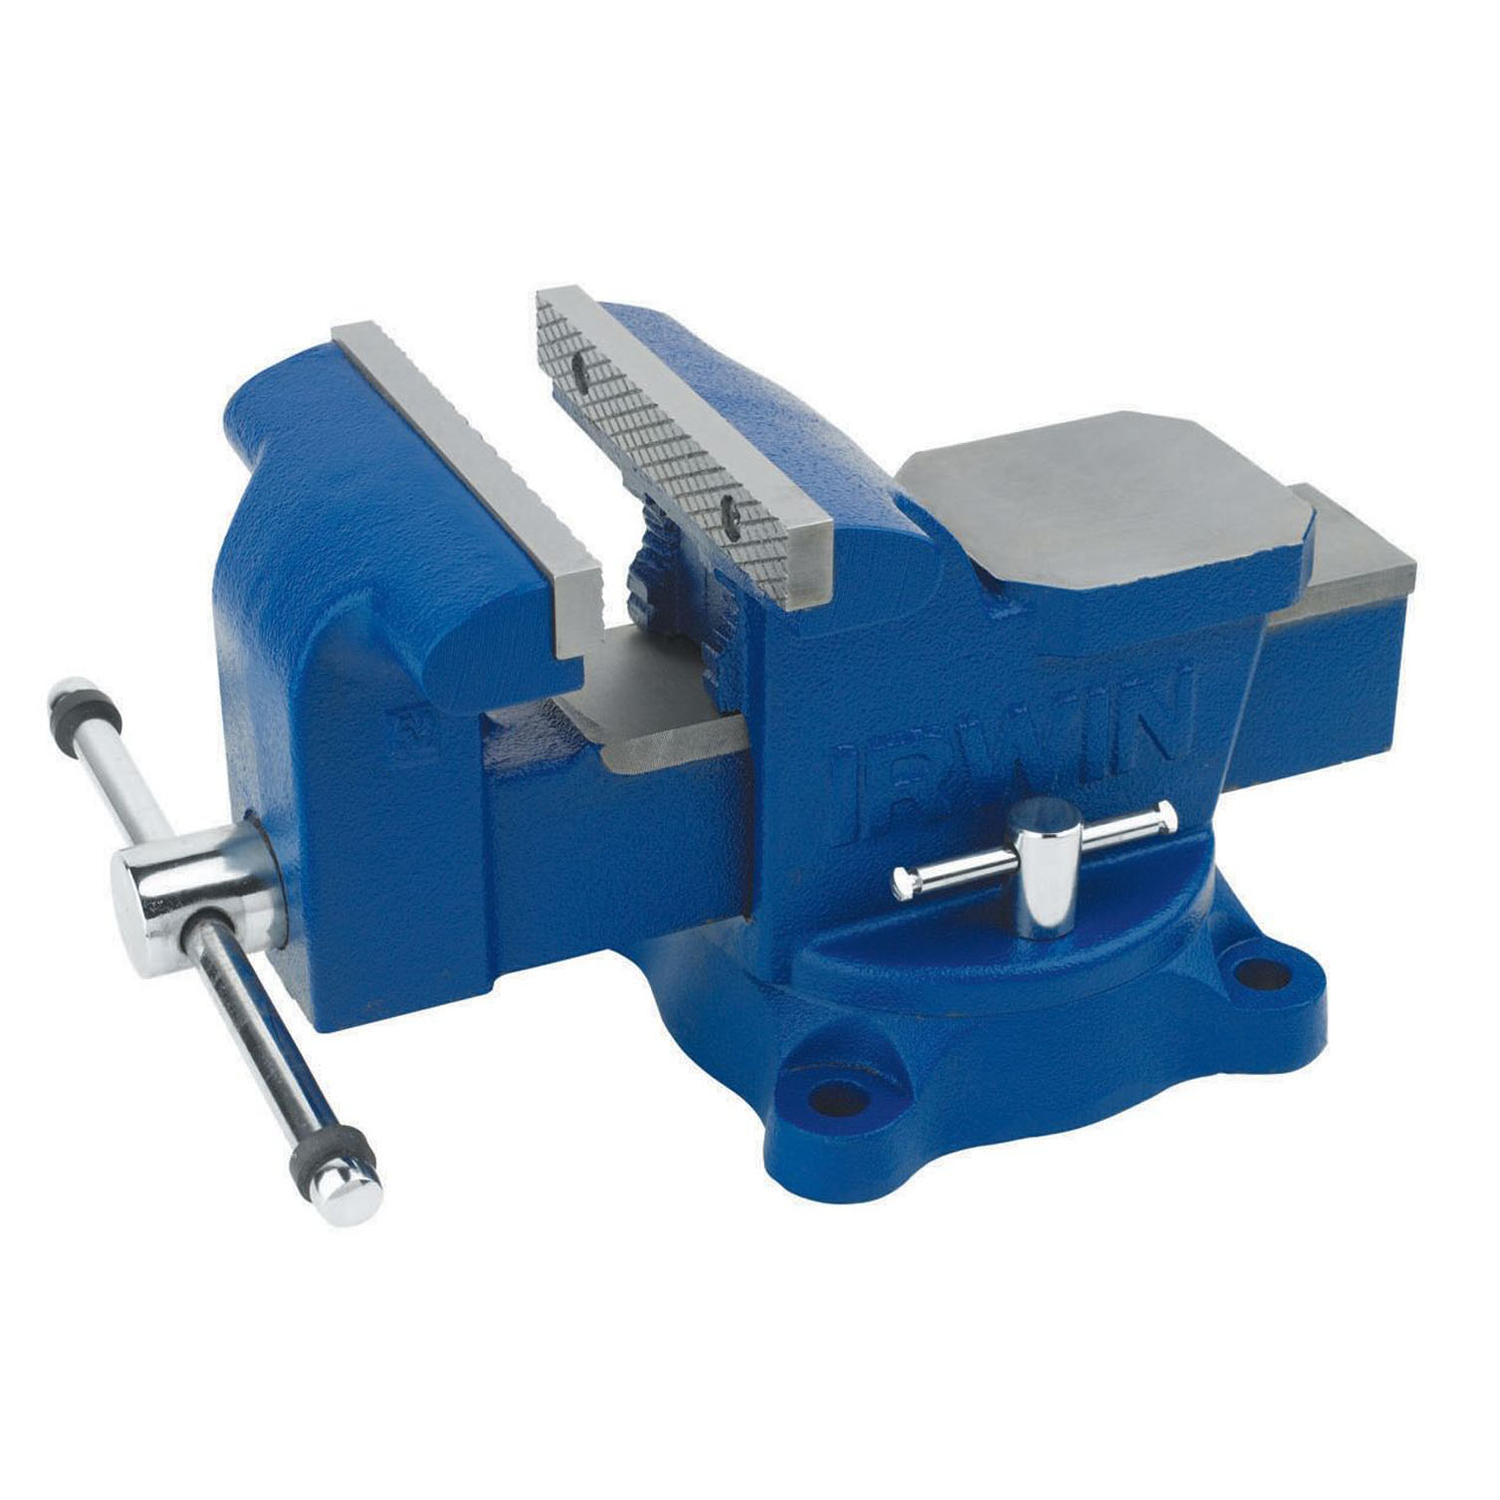 Irwin  6 in. Steel  Workshop Bench Vise  Blue  Swivel Base